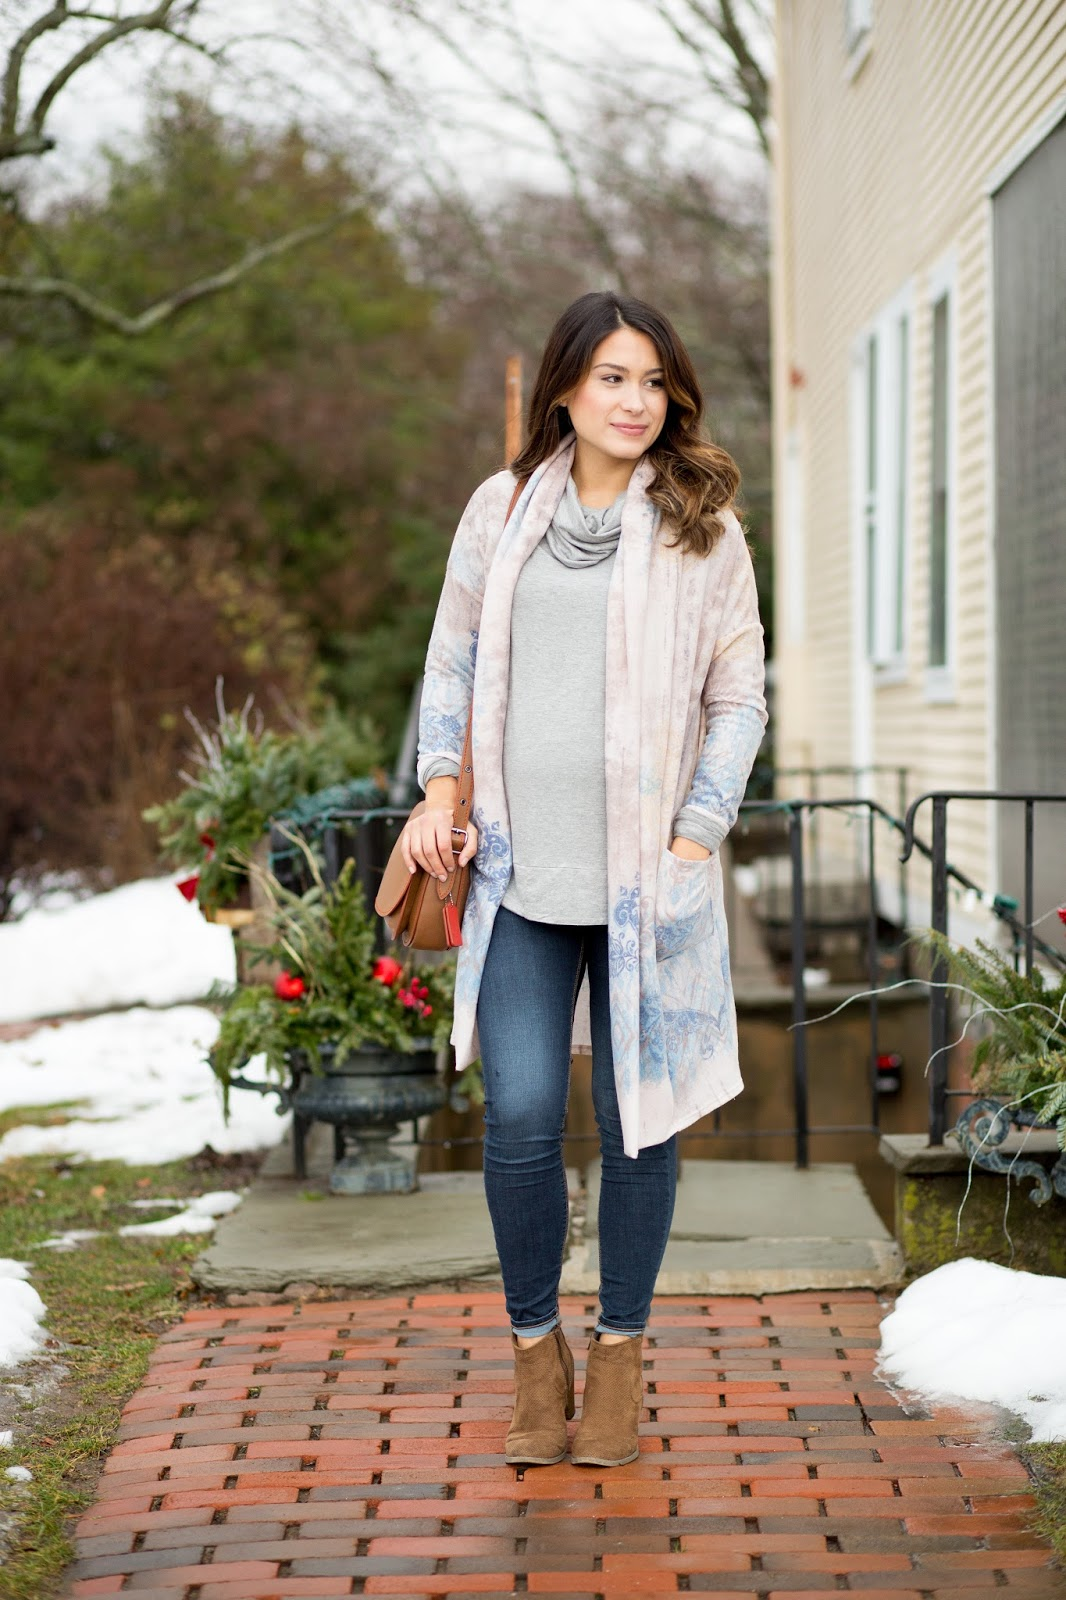 e99d95ad8ed42 So far, I have tried many different maternity brands and Pink Blush  Maternity has been one brand that has an array of styles available which is  so important ...